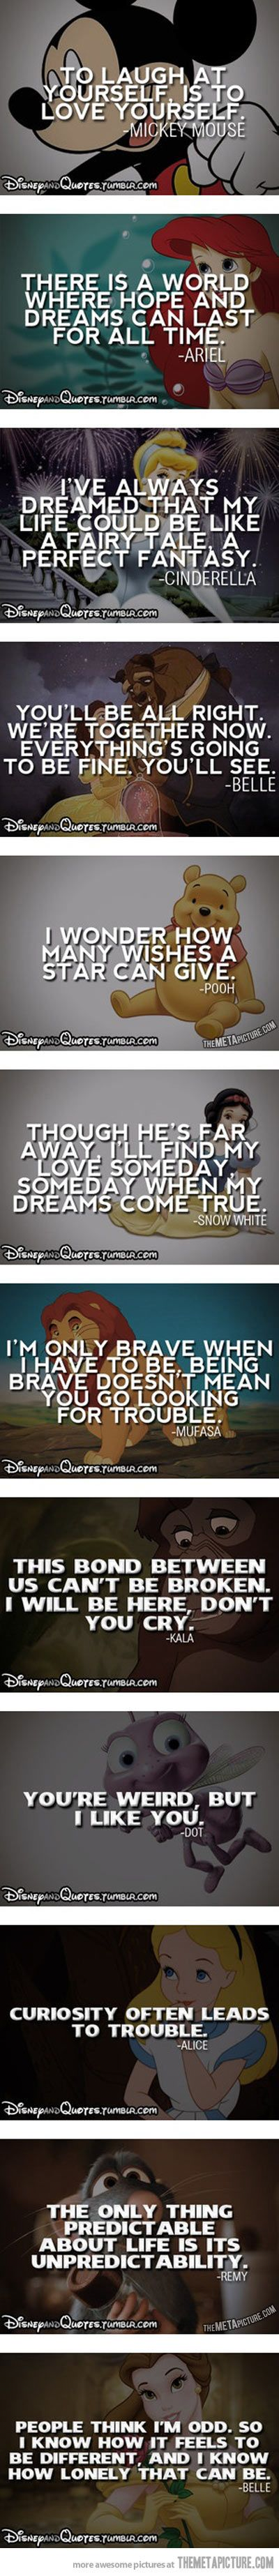 Disney quotes for a bulletin board or door decs